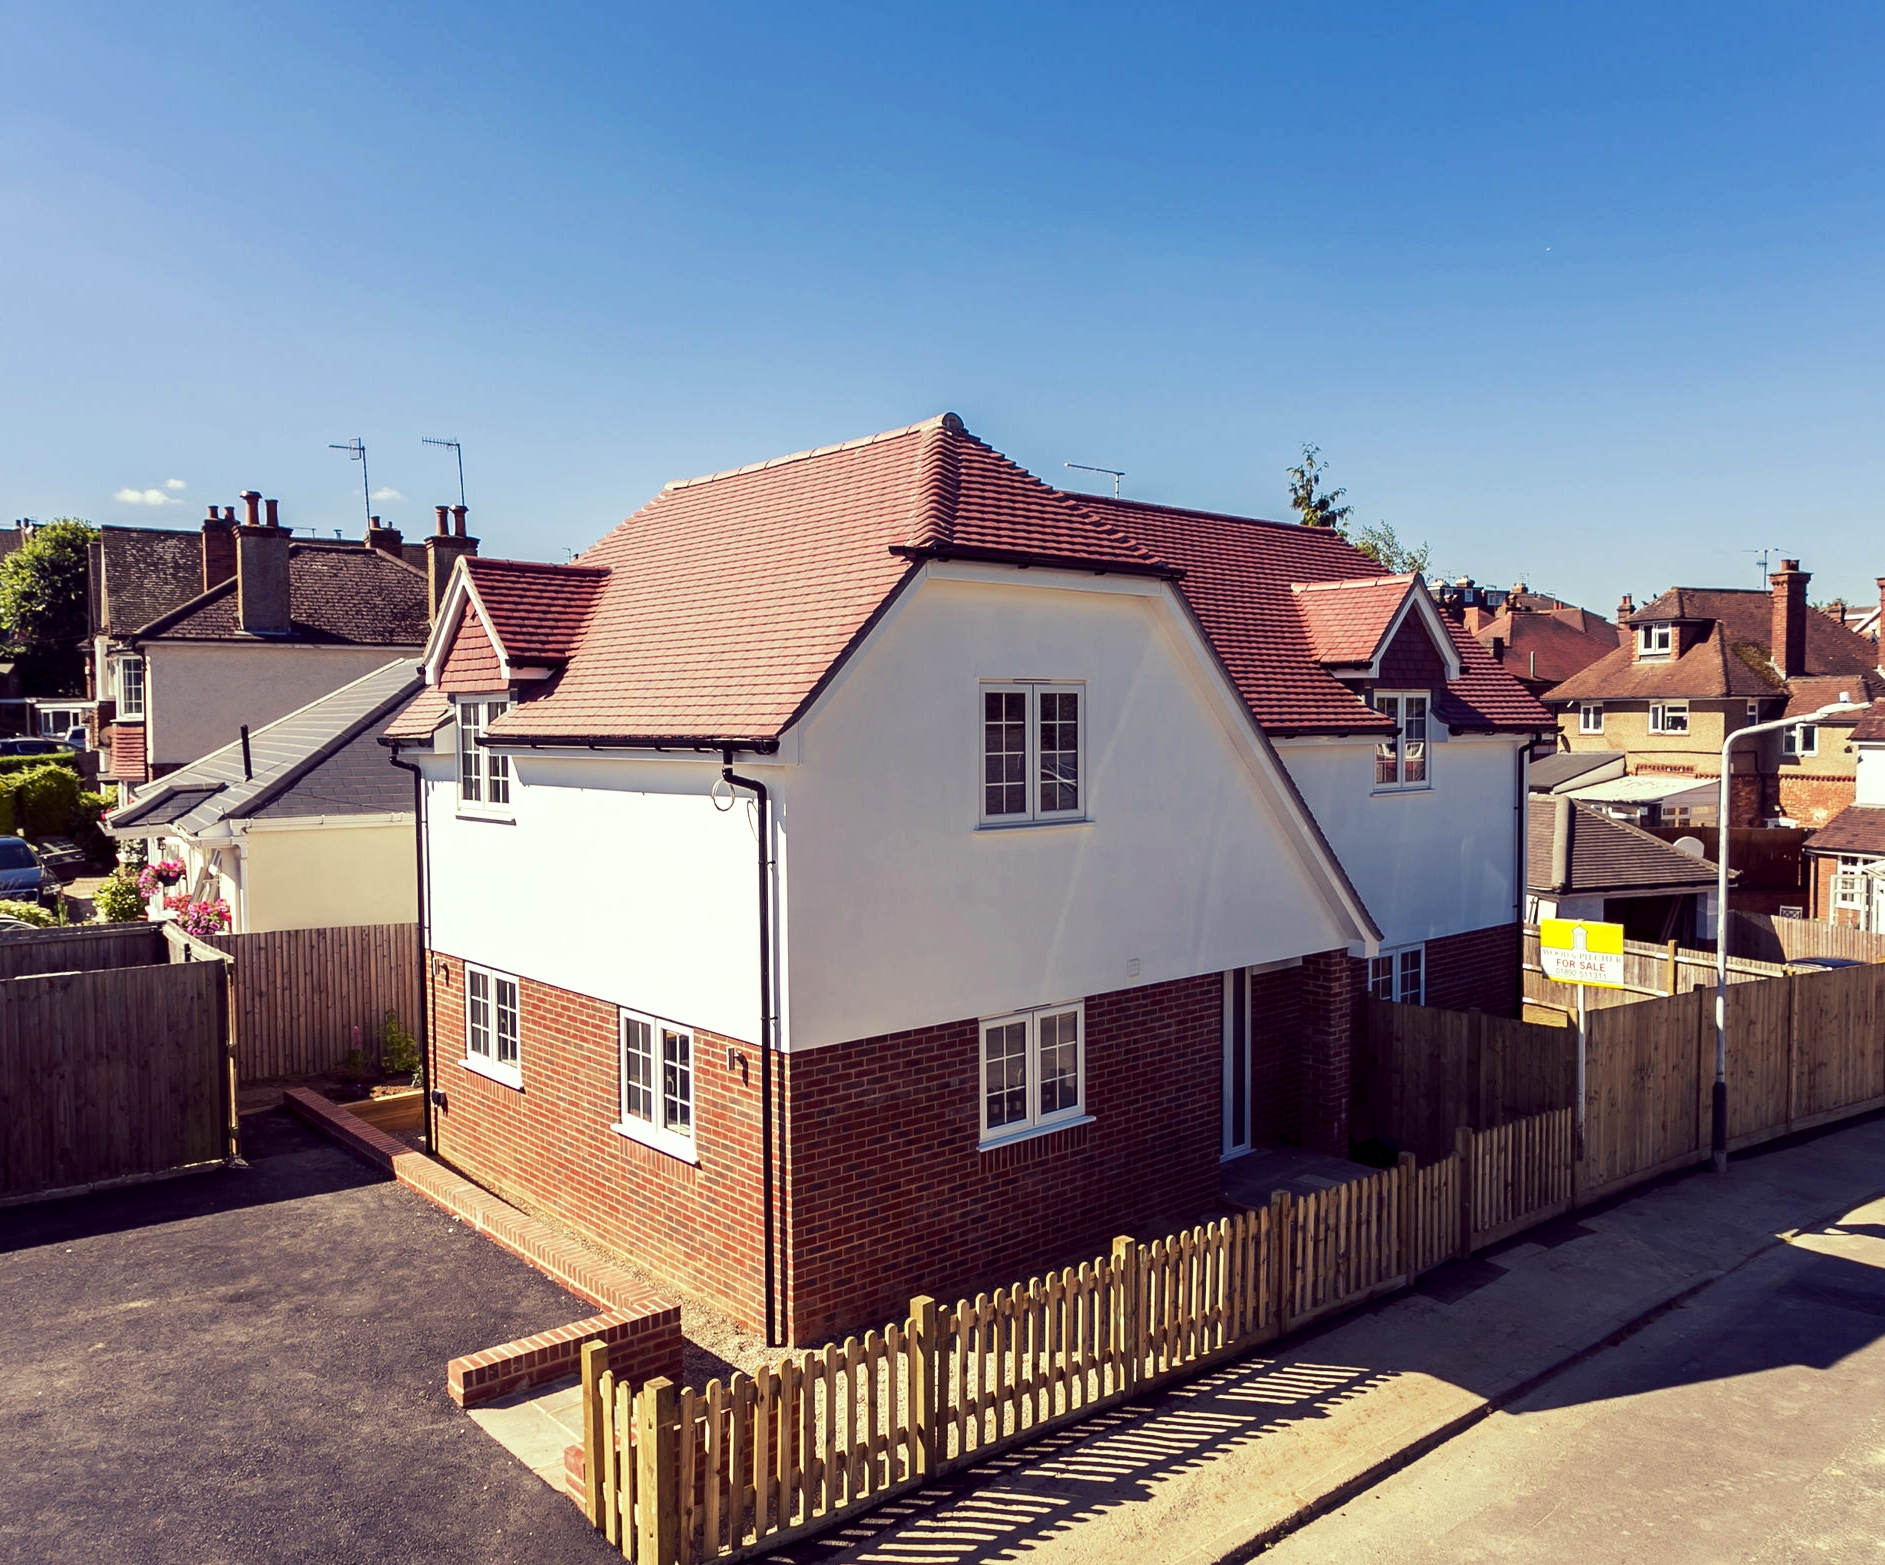 3 Bedroom property in Doric Avenue, Southborough.